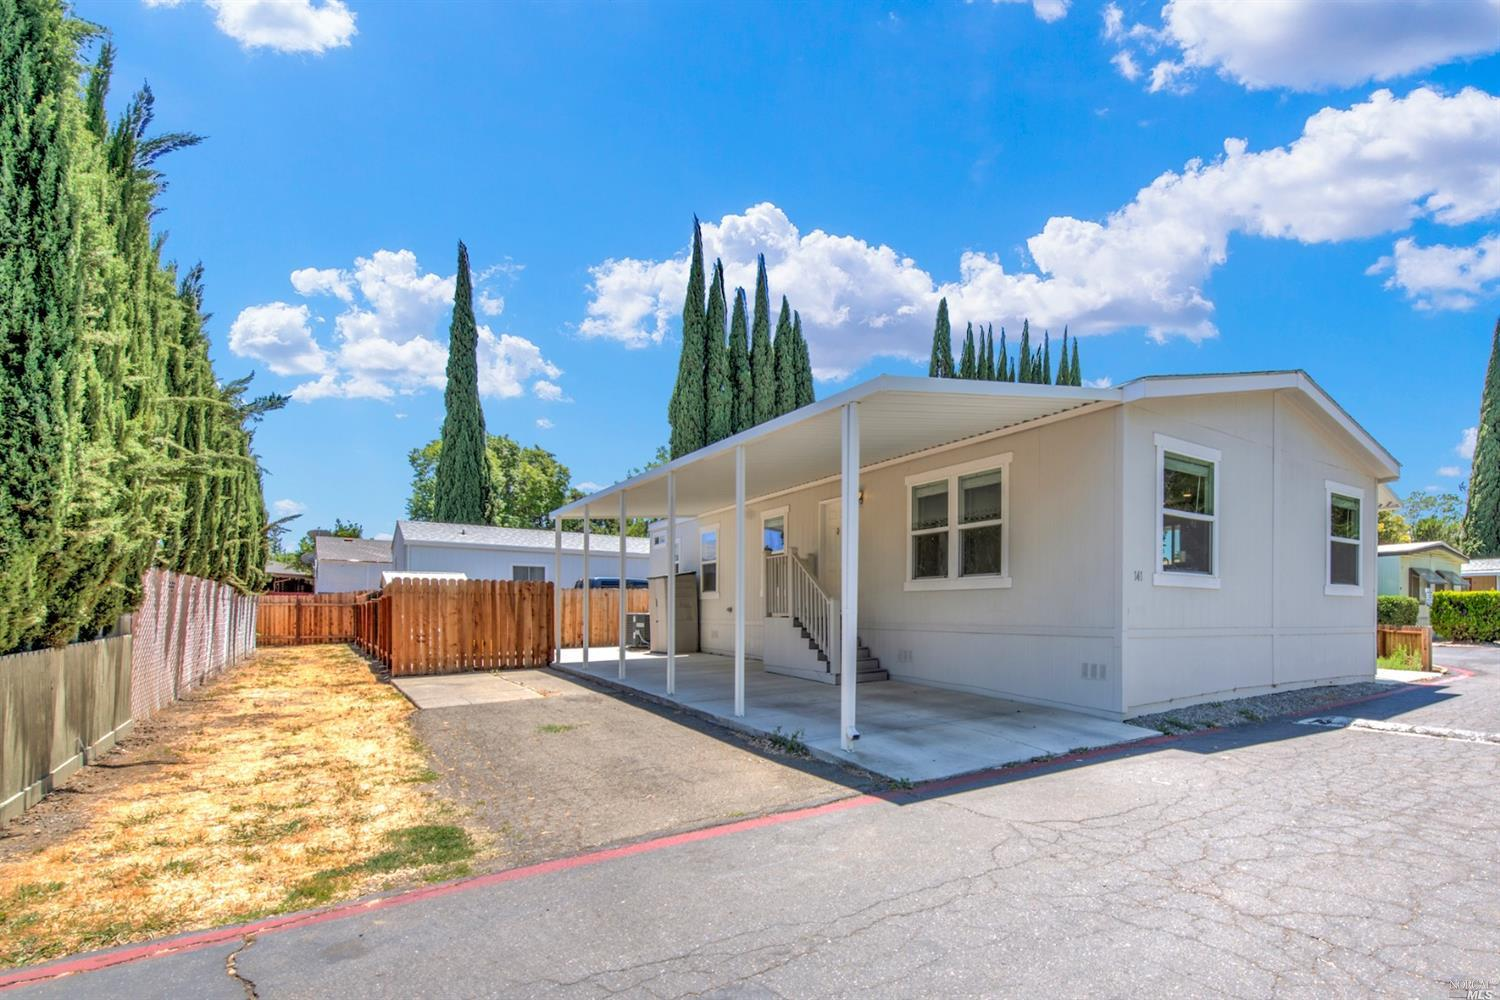 Fall in love with this 2018, 3 bedroom 2 bathroom spacious Double Wide Manufactured Home. Located on a Premium Corner Lot, filled with lots of natural light. This Manufactured home features a open concept Living room, Dining room and Kitchen combo great for entertaining family and friends. Kitchen features granite countertops, double stainless steel sink, white appliances, lots of cabinetry and island (refrigerator included), with beautiful vinyl flooring. Huge Master suite and bathroom. Large indoor Laundry room, washer and dryer included. The Park Features a Playground, Clubhouse, Swimming Pool and Recreational Facilities.